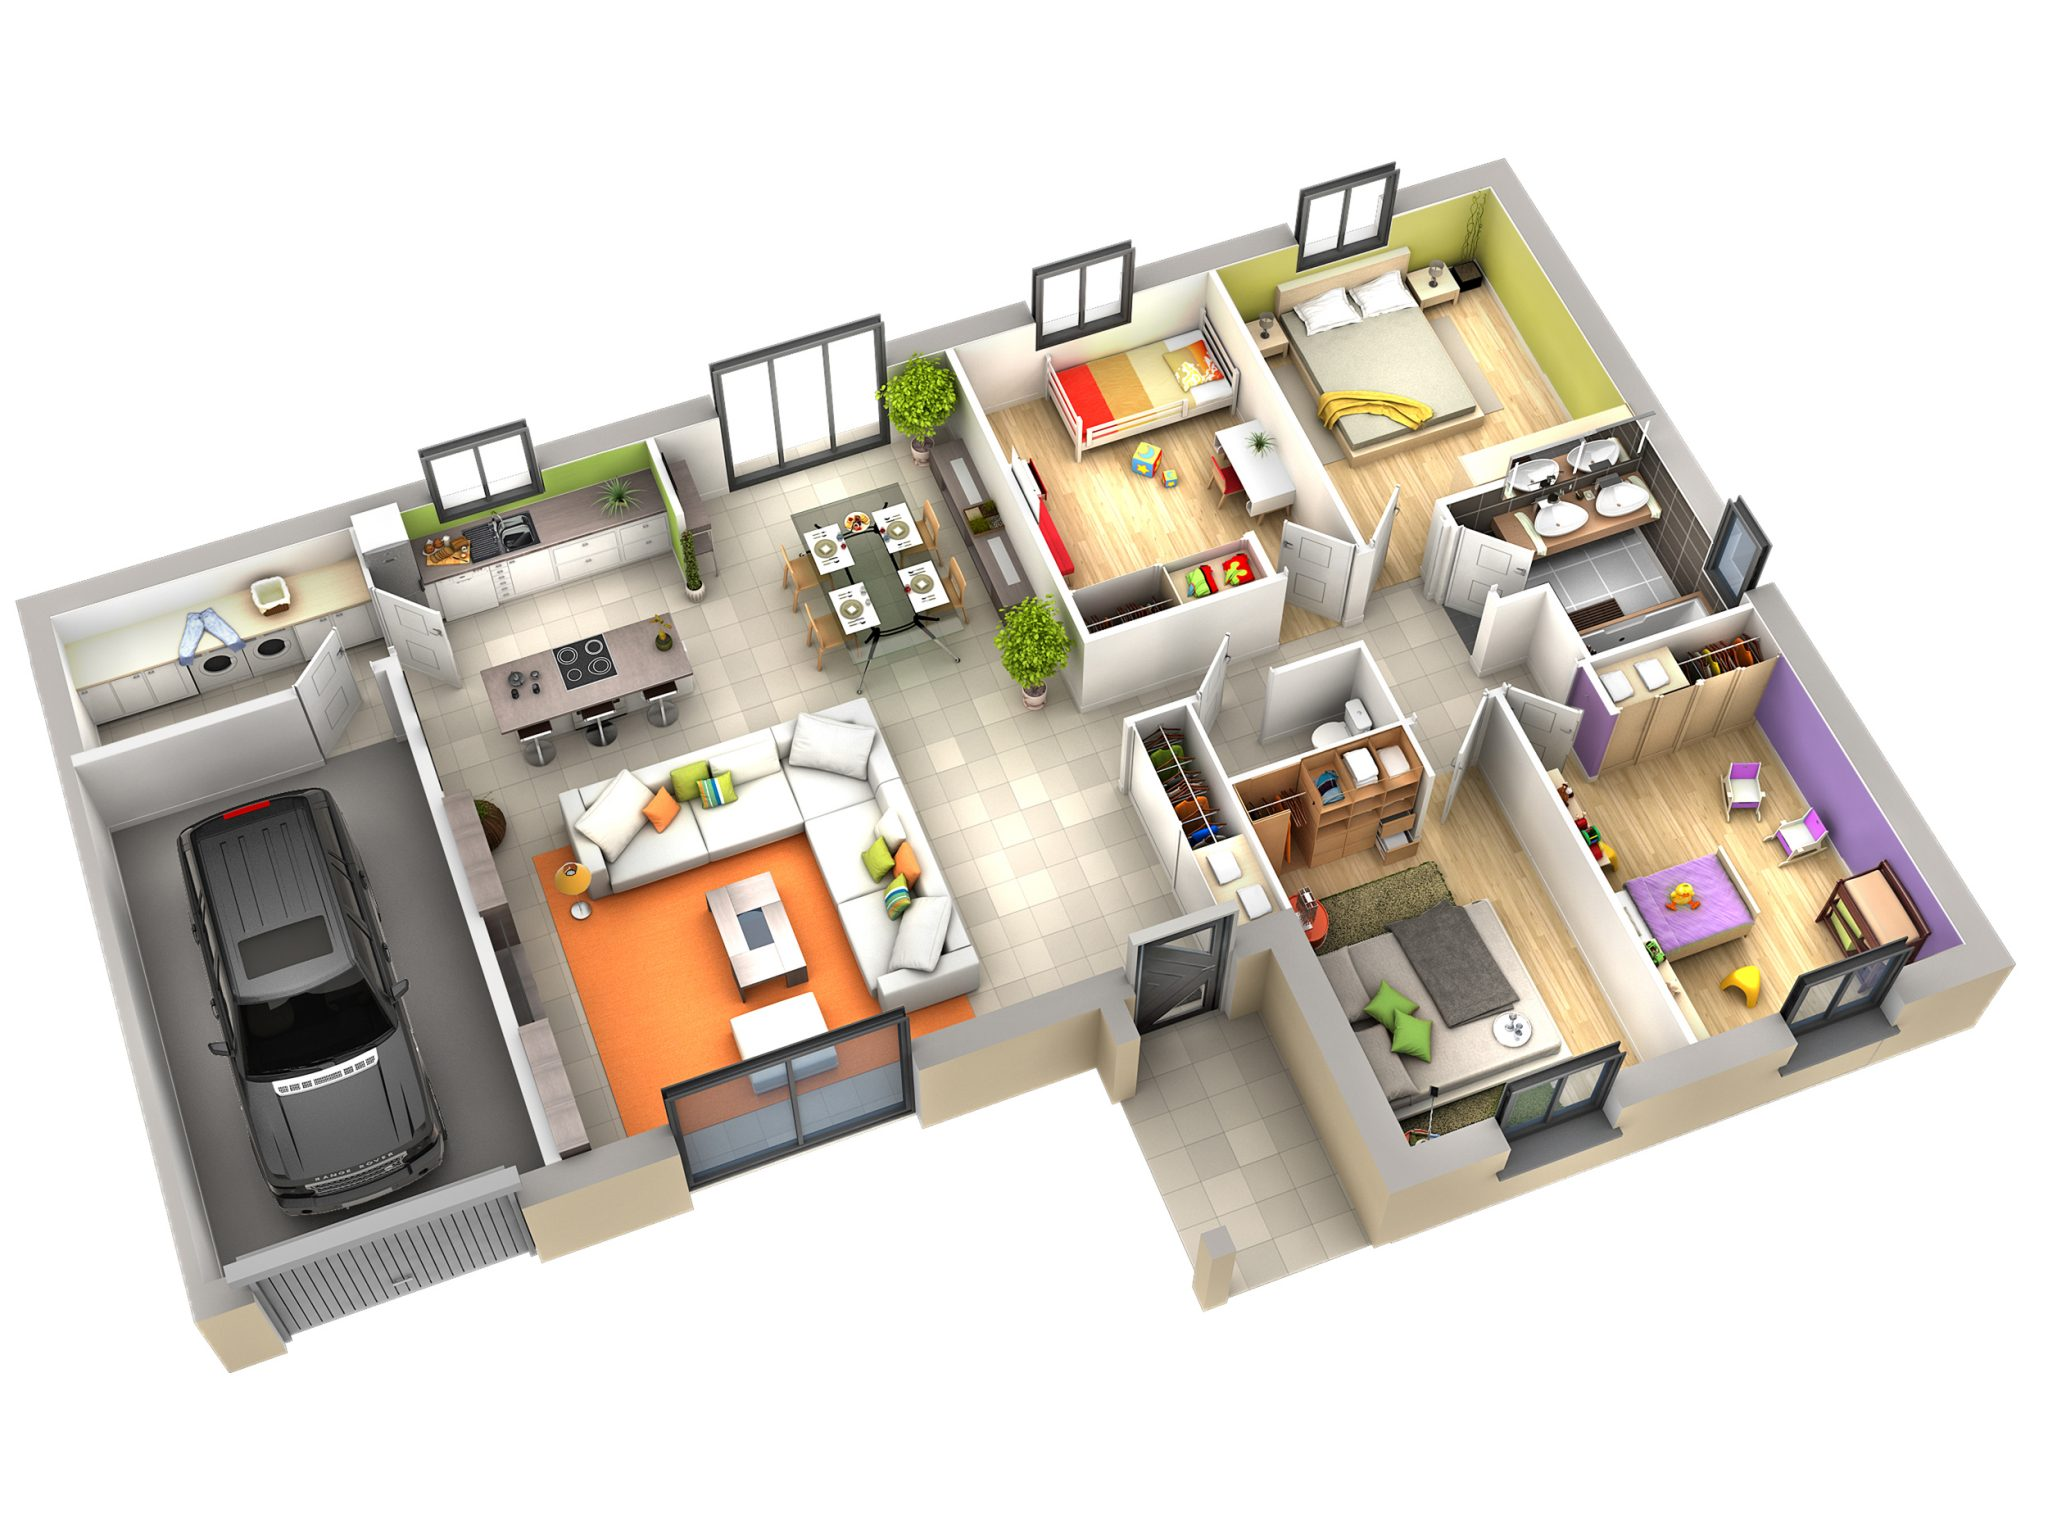 Plan interieur de maison l 39 impression 3d for Plan interieur maison